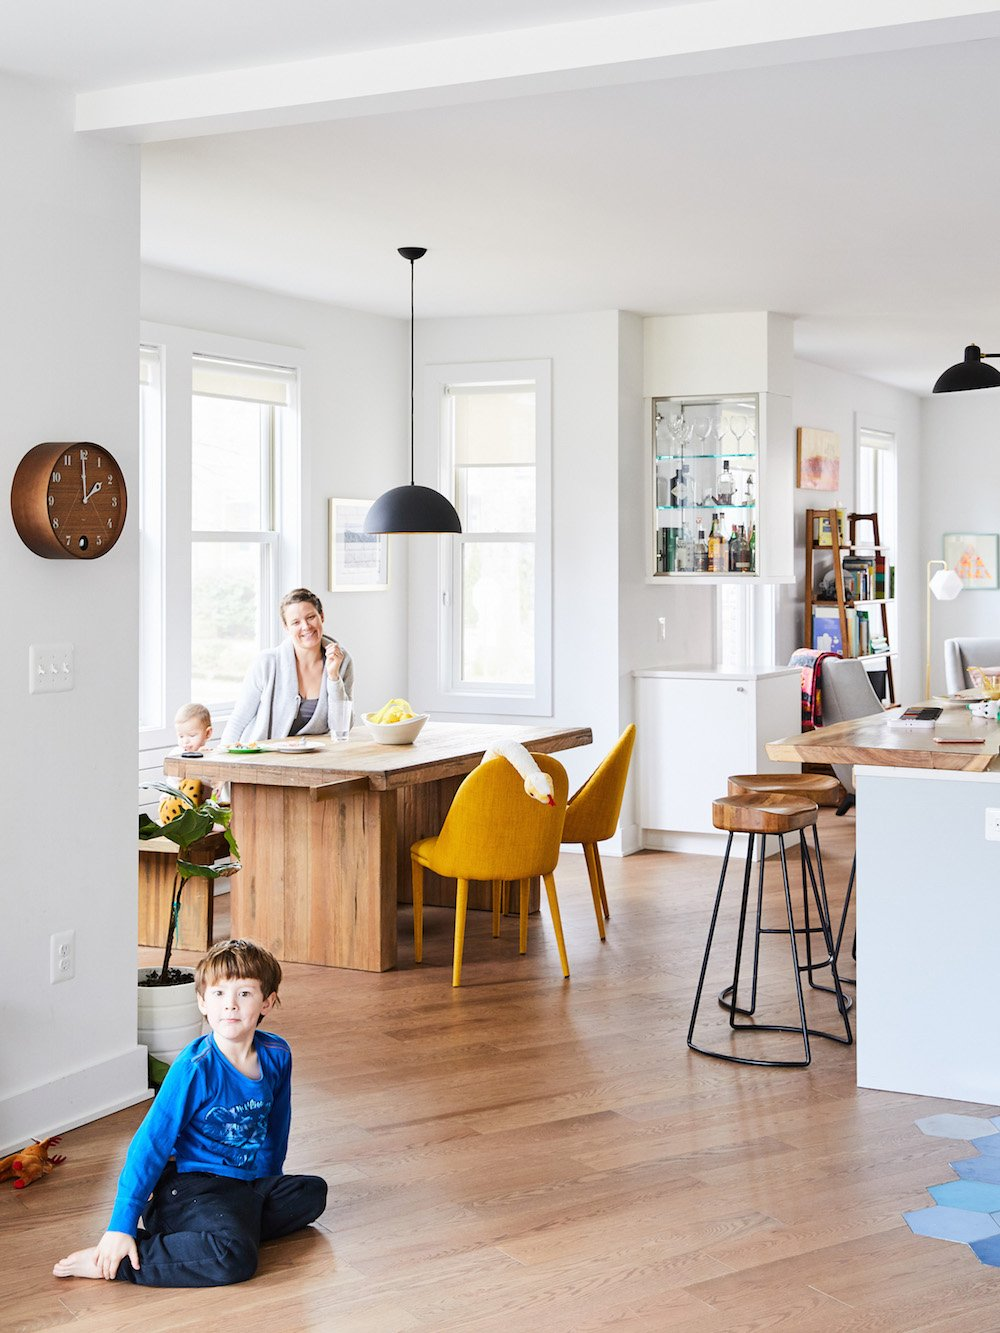 A Washington, D.C. house tour